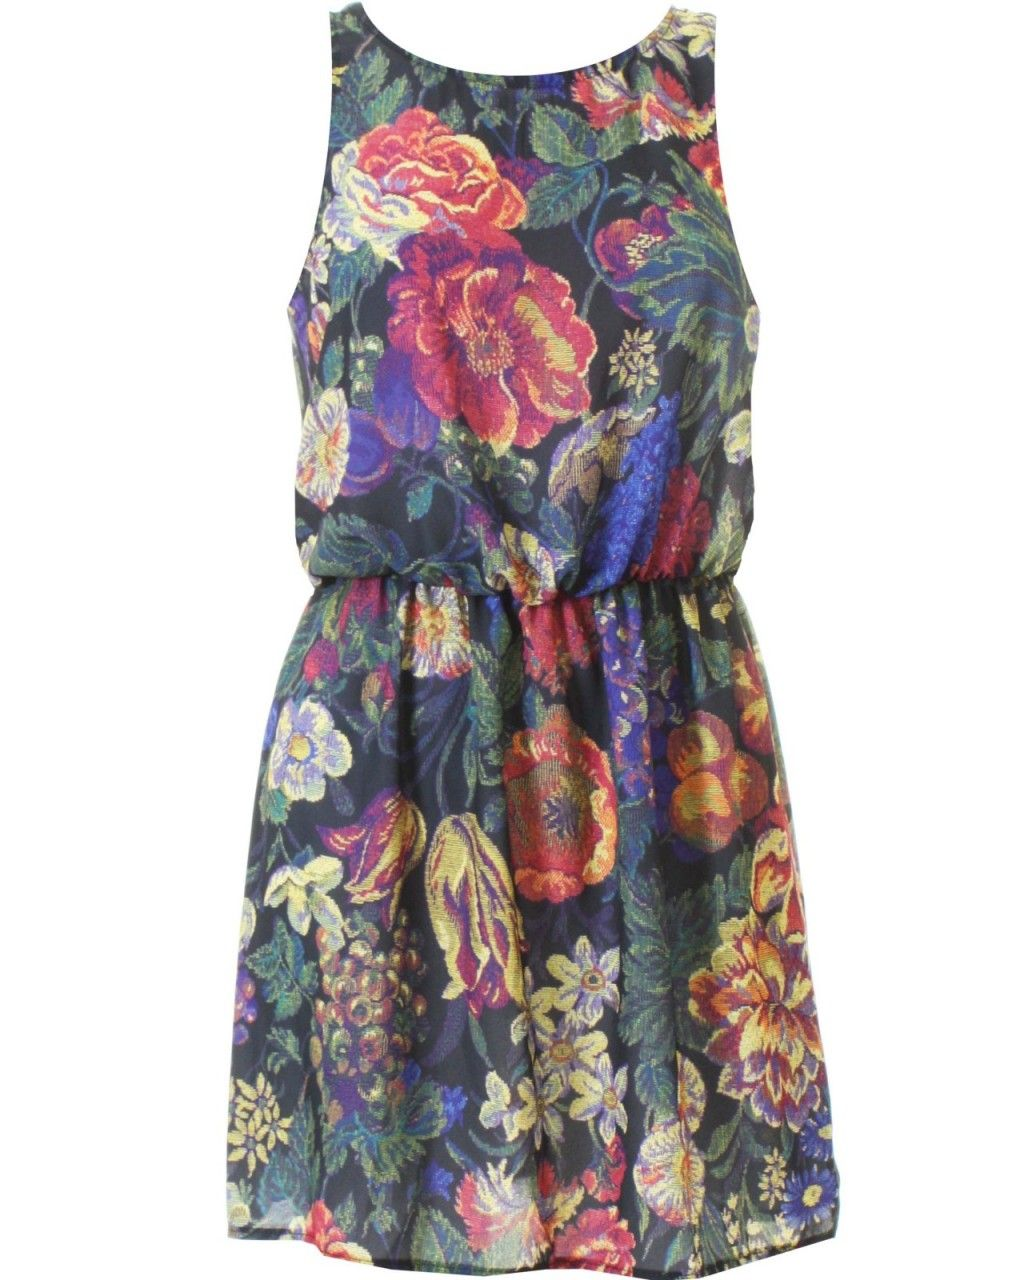 LOVE Tapestry Print Summer Dress - In Love With Fashion